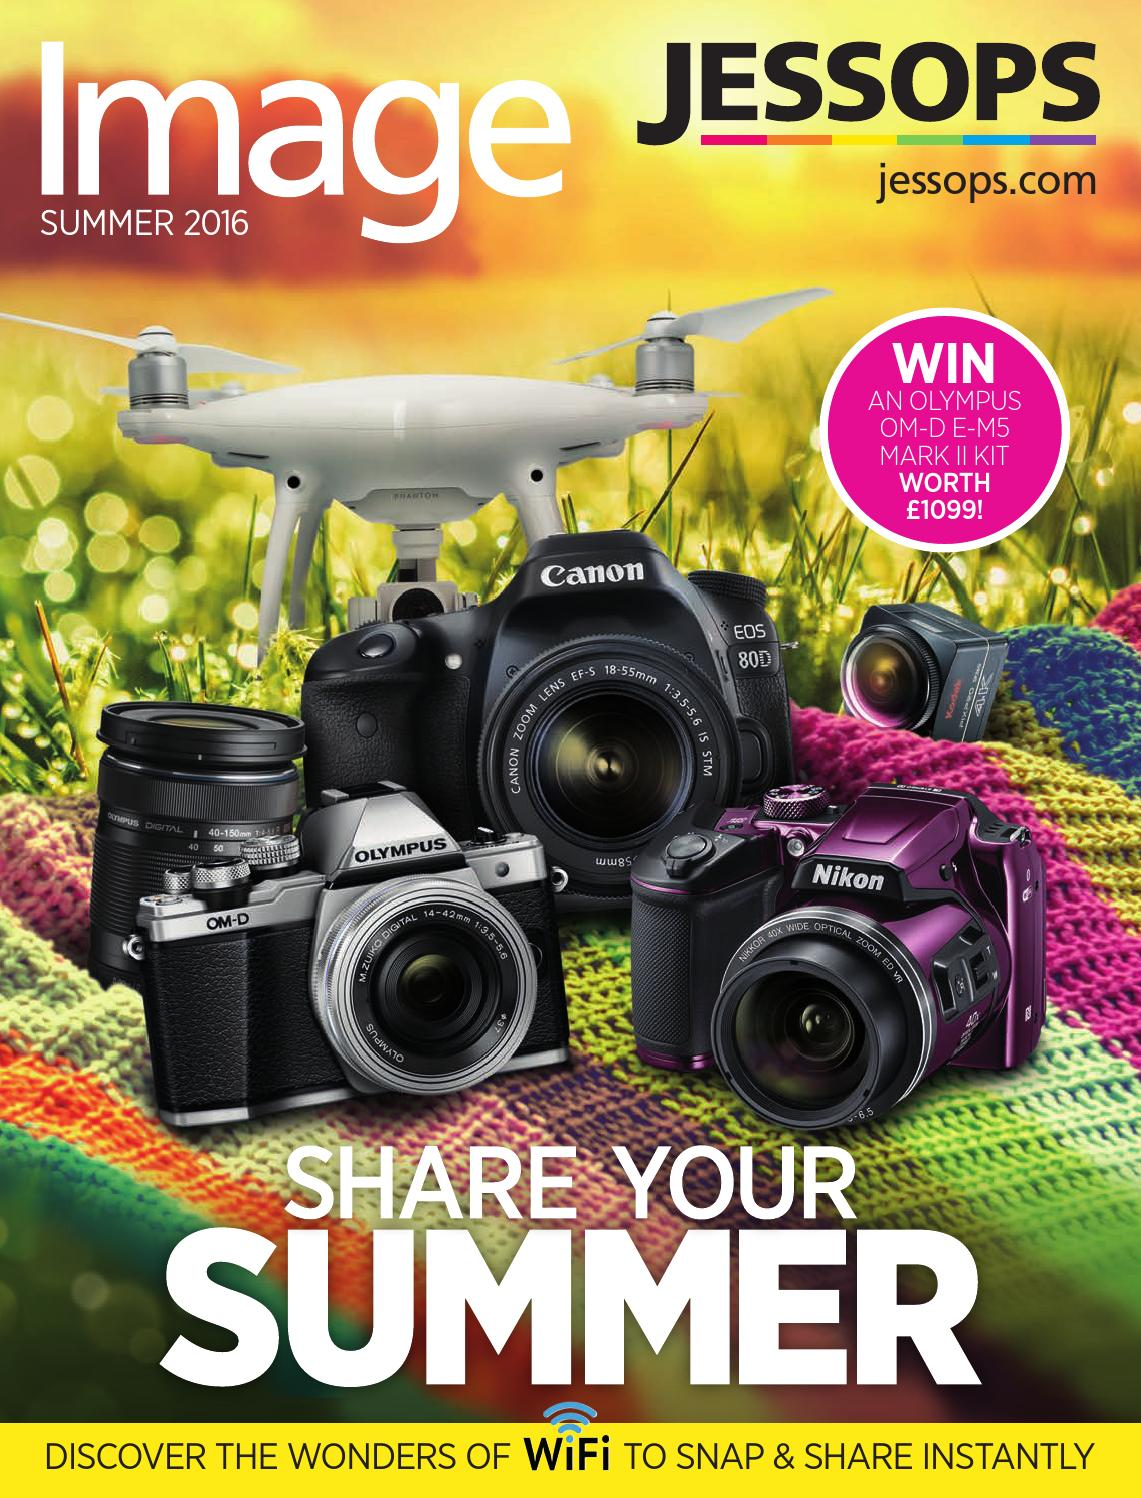 Jessops Image Catalogue Summer 2016 By Bright Publishing Issuu Canon Ixus 185 20 Mp 8x Zoom Free Sdhc 16gb Case Tripod